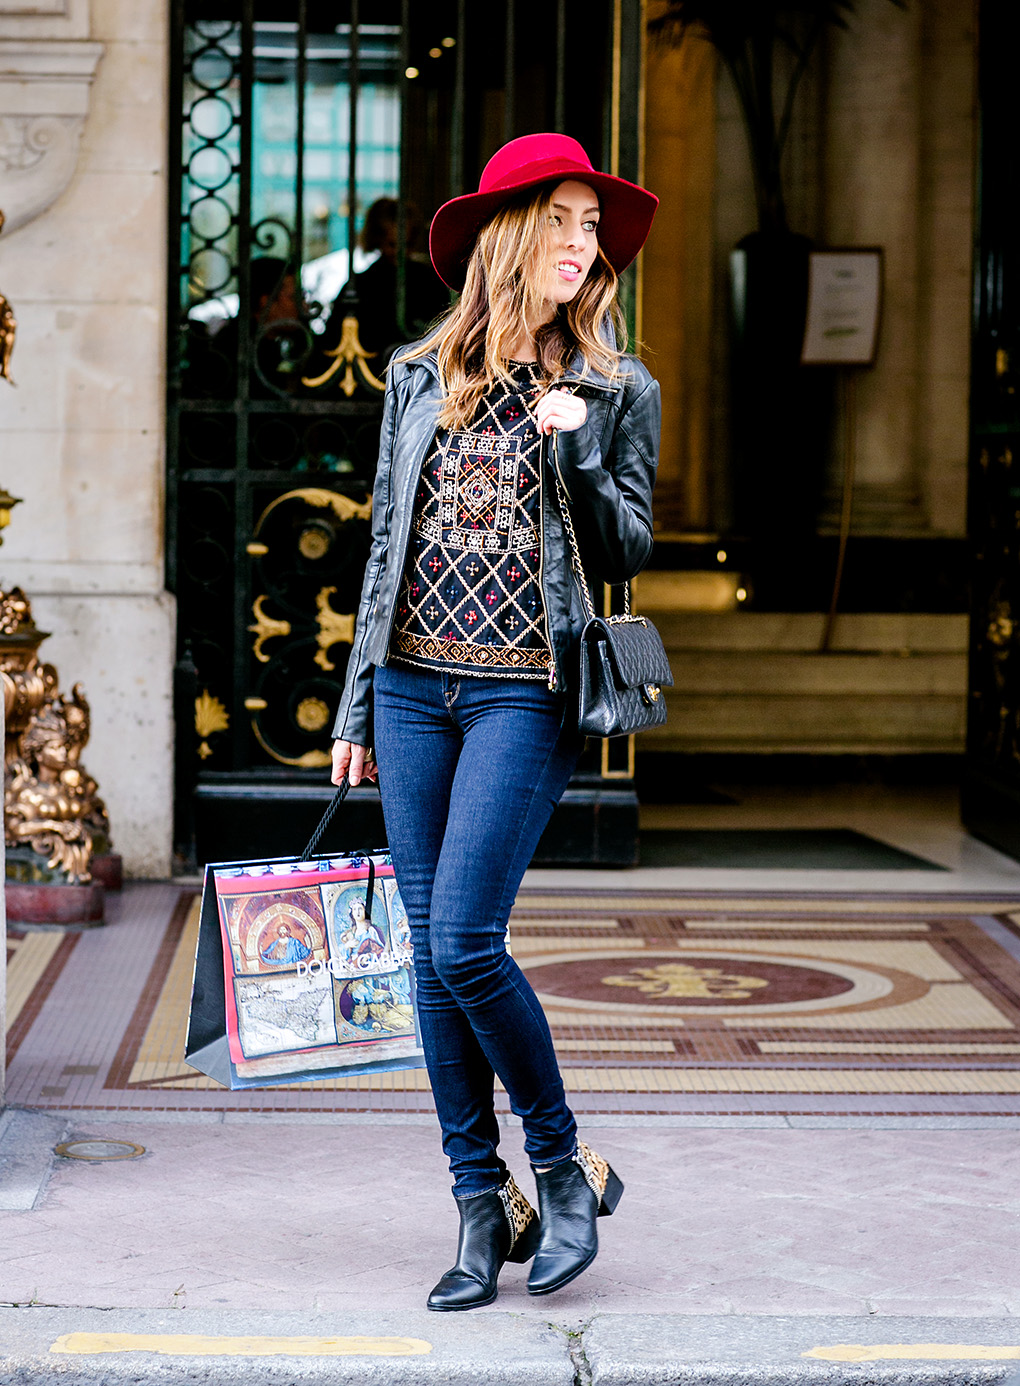 Sydne Style gives outfit ideas for what to wear in Paris as a fashion blogger street style